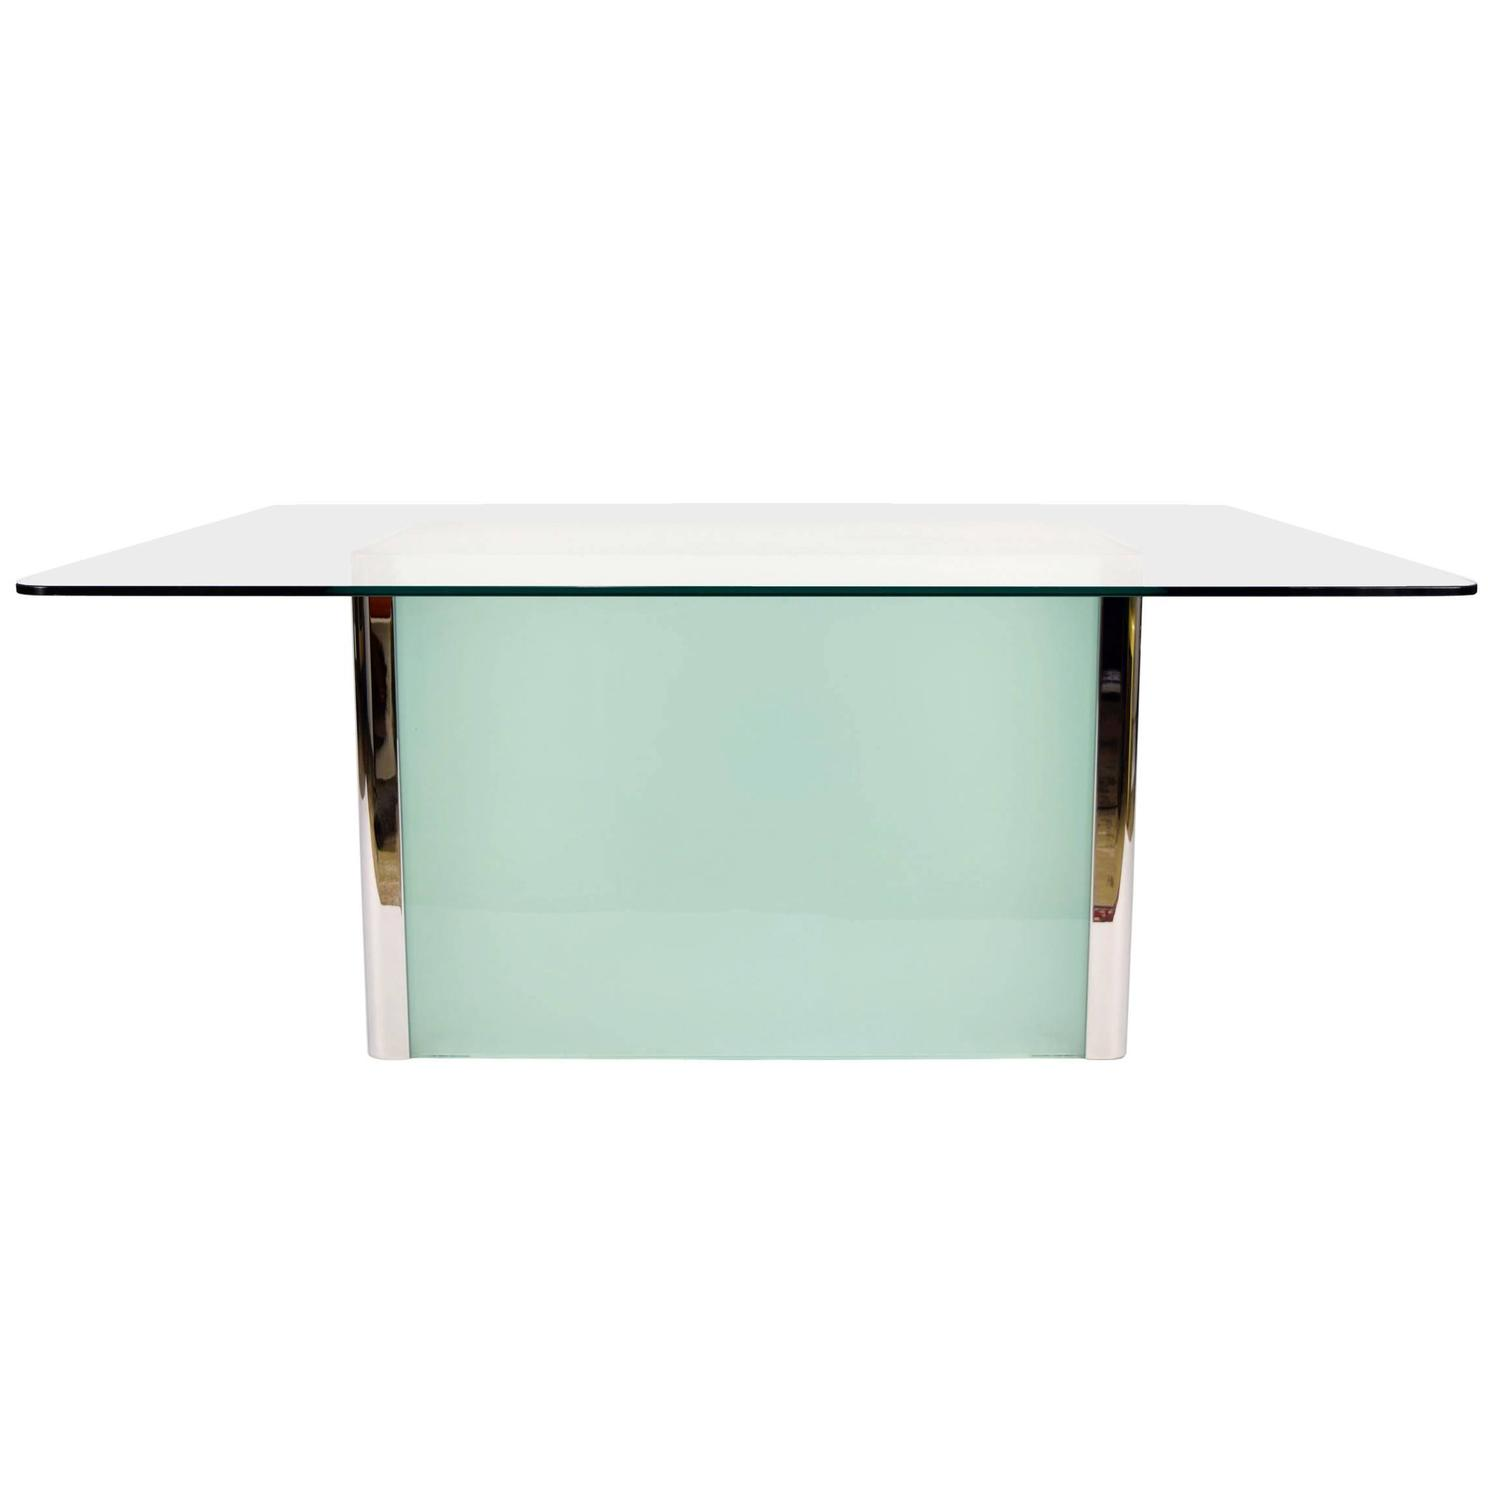 Pace collection dining table with frosted glass base for sale at 1stdibs Frosted glass furniture